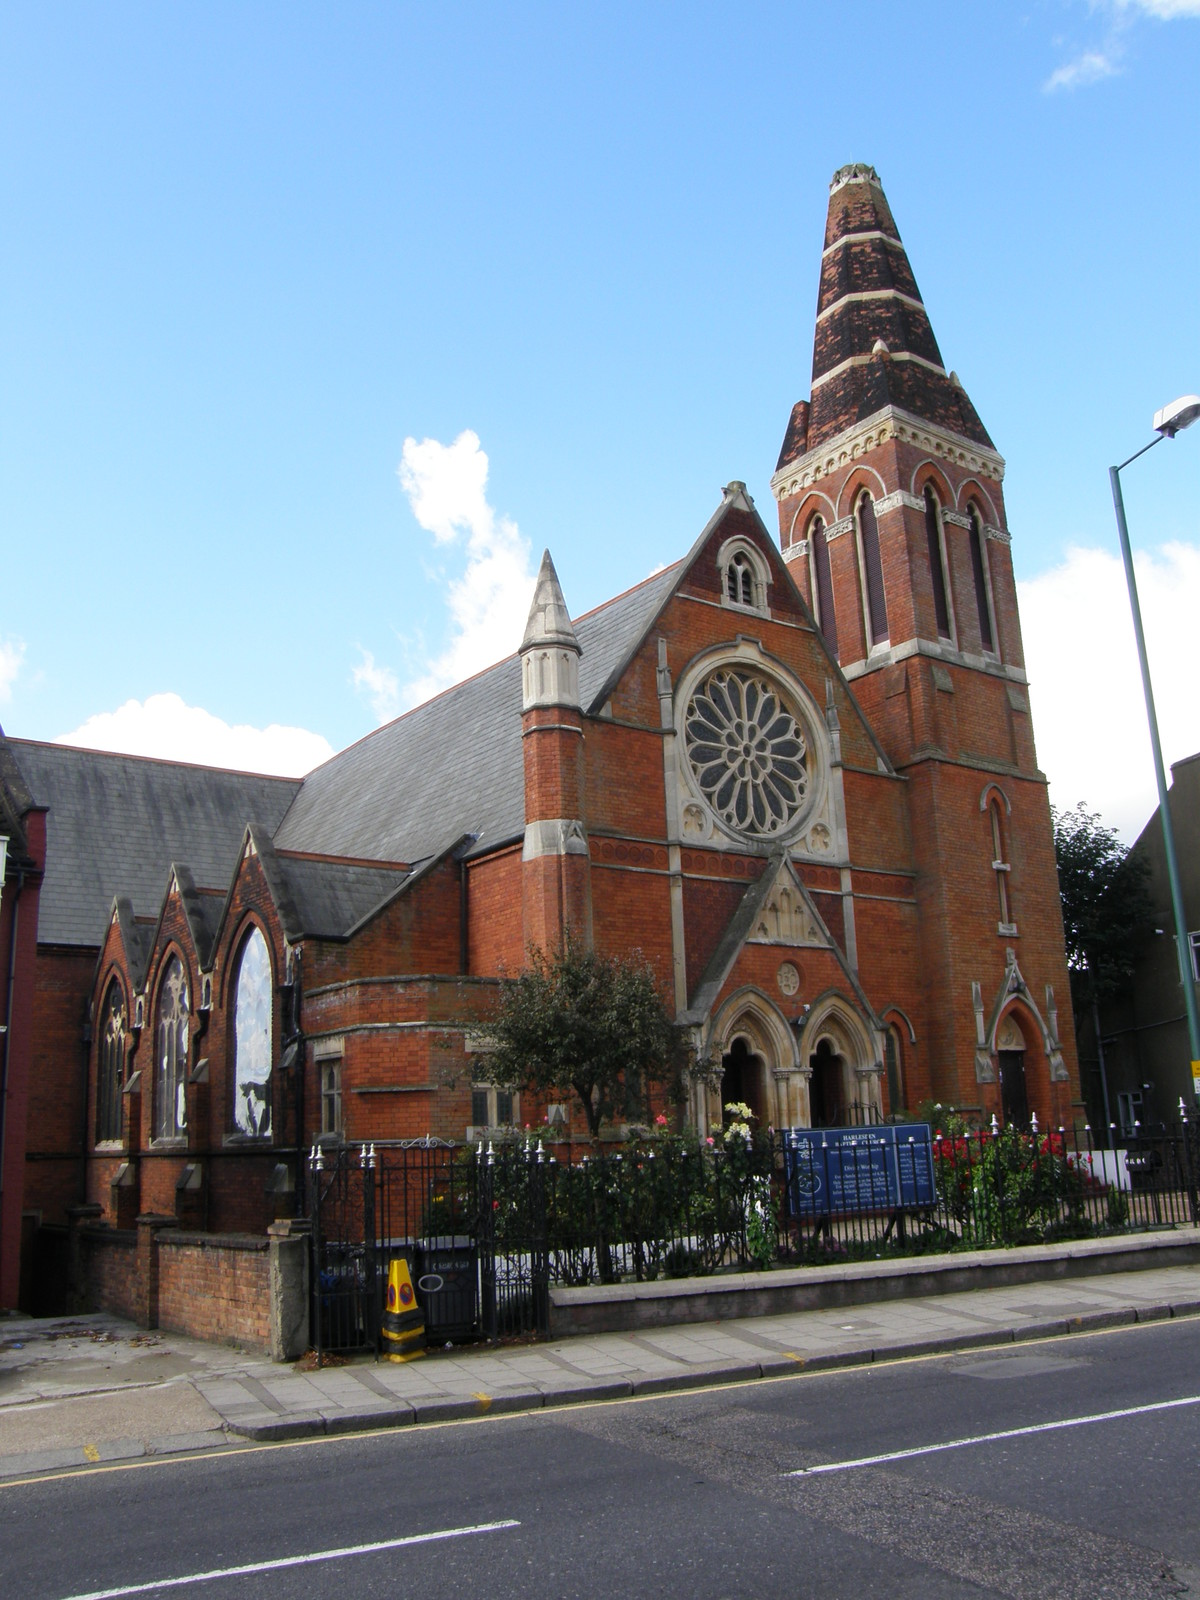 Harlesden Baptist Church on Acton Lane